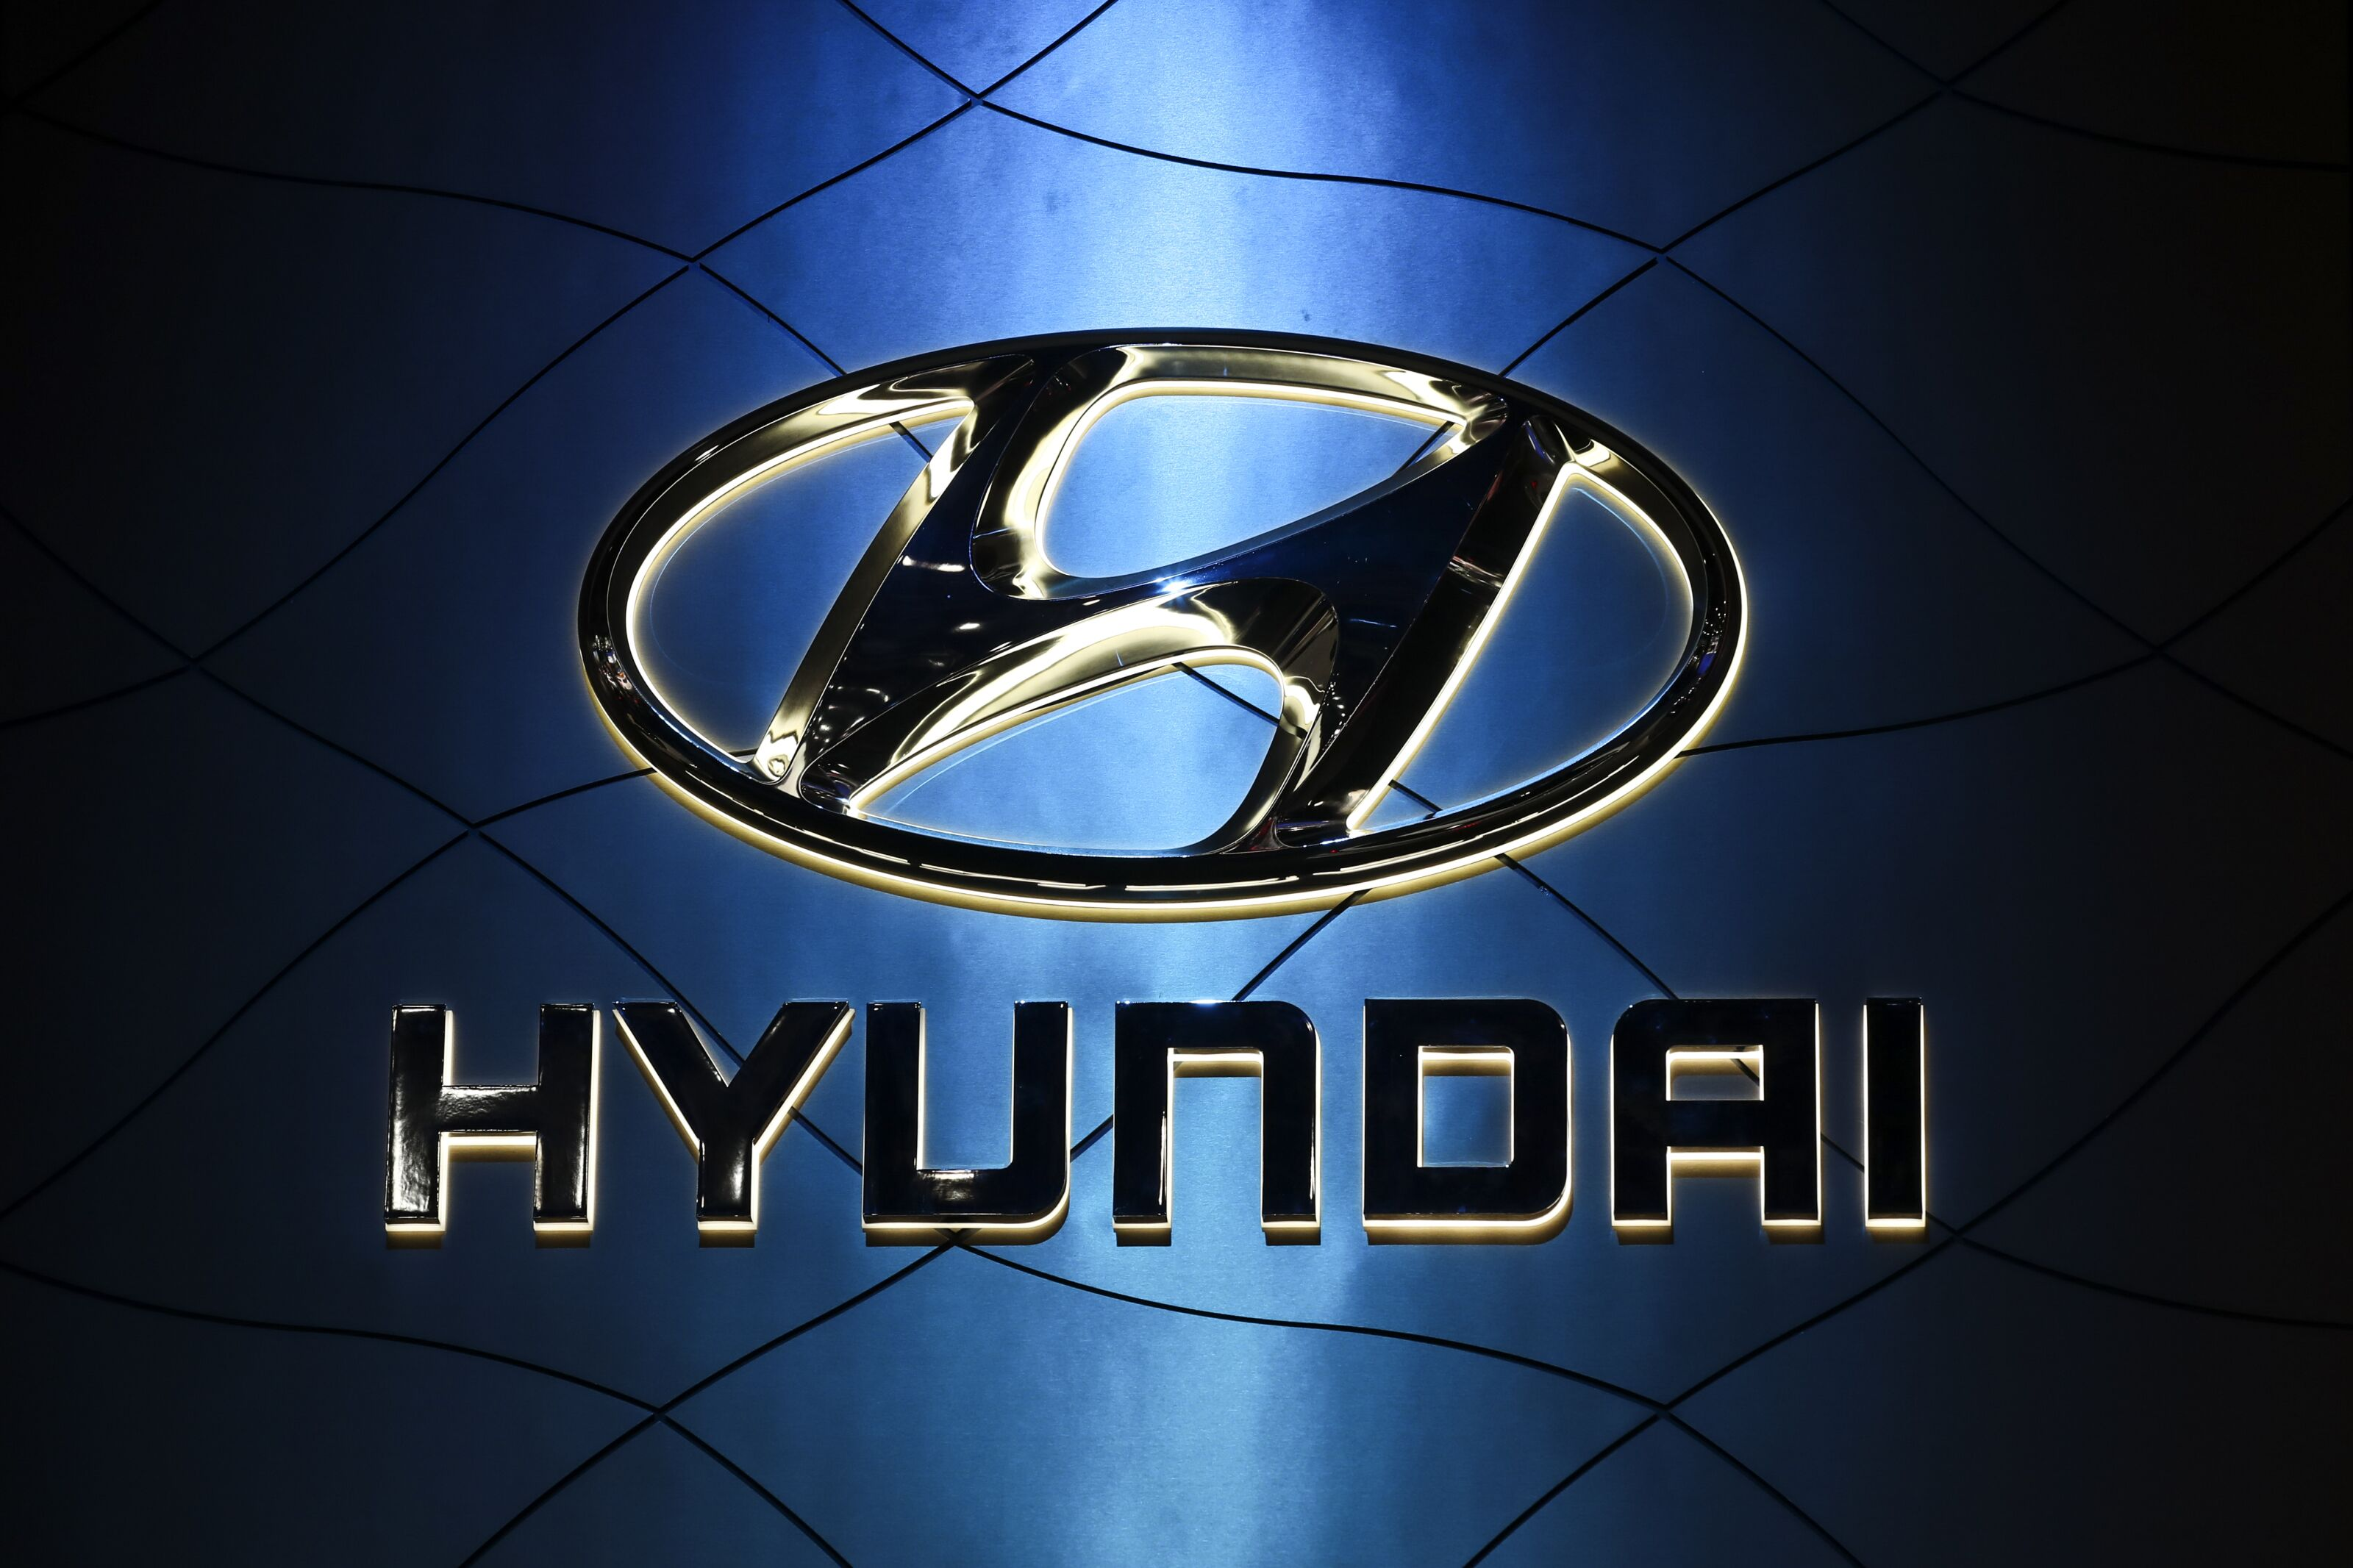 Hyundai Electric Concept Car: Frankfurt Motor Show Promising To Be Lit